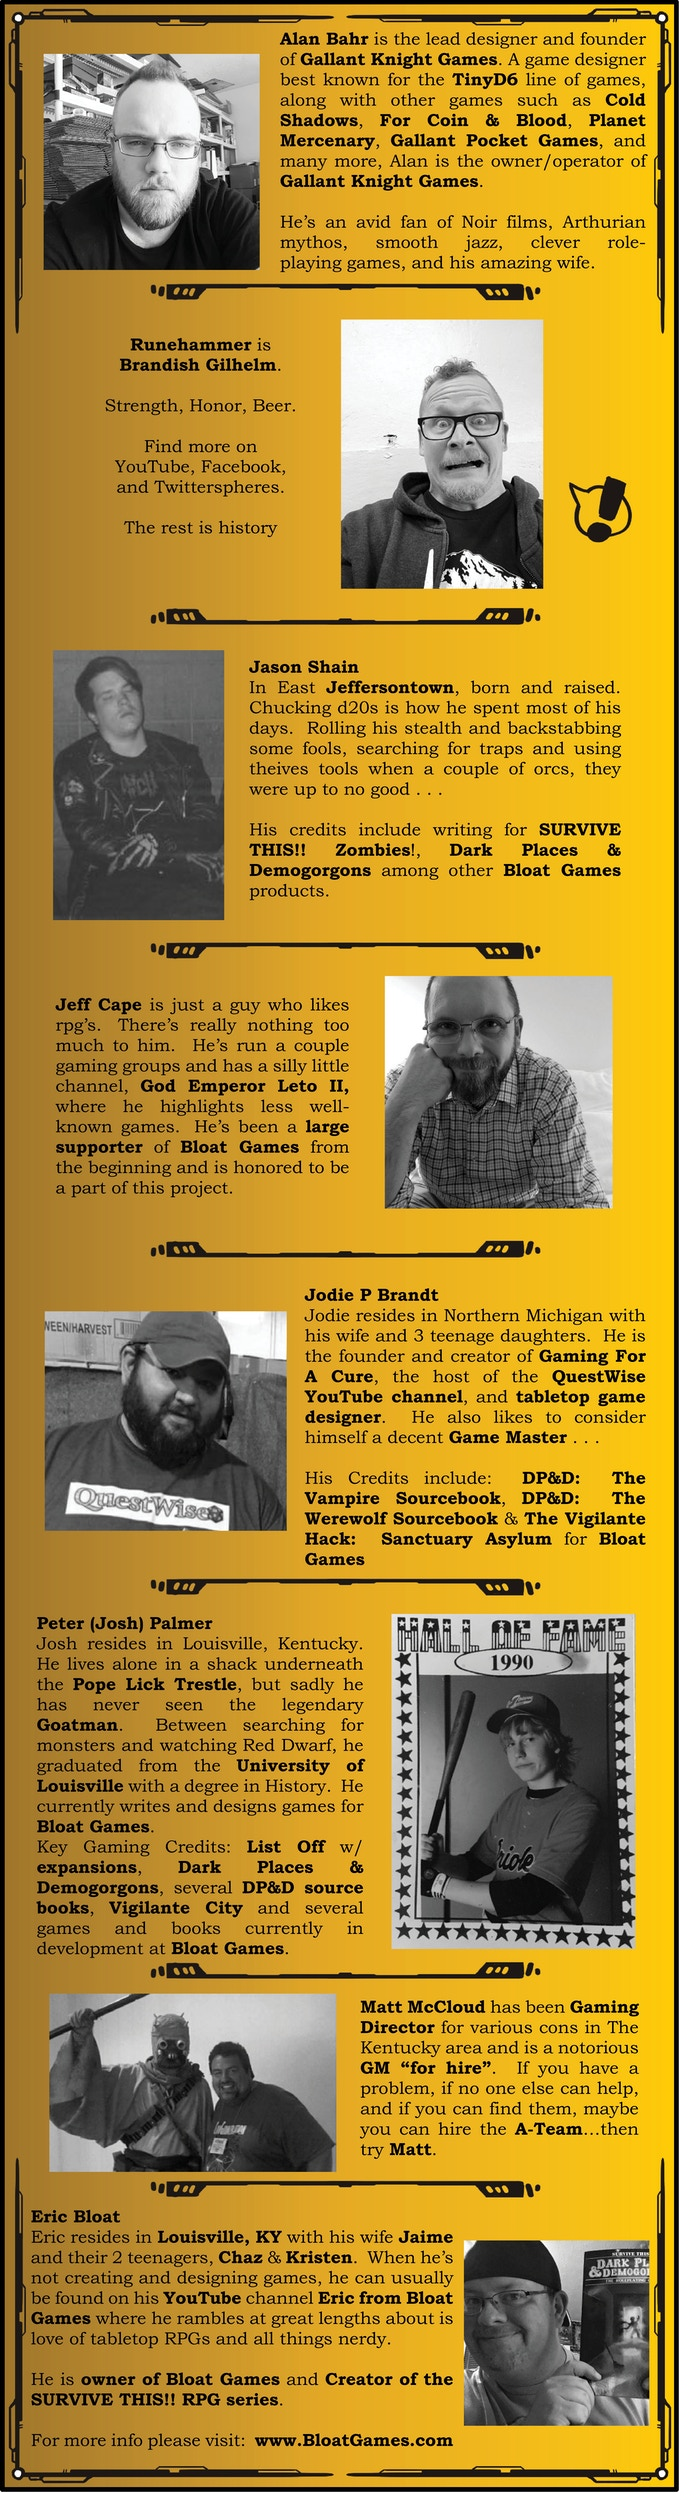 Editor's note: These guys are far more talented than they let on in their Bios. Their talent greatly exceeds my own and I'm very lucky to have them as part of my creative team! - Eric B.